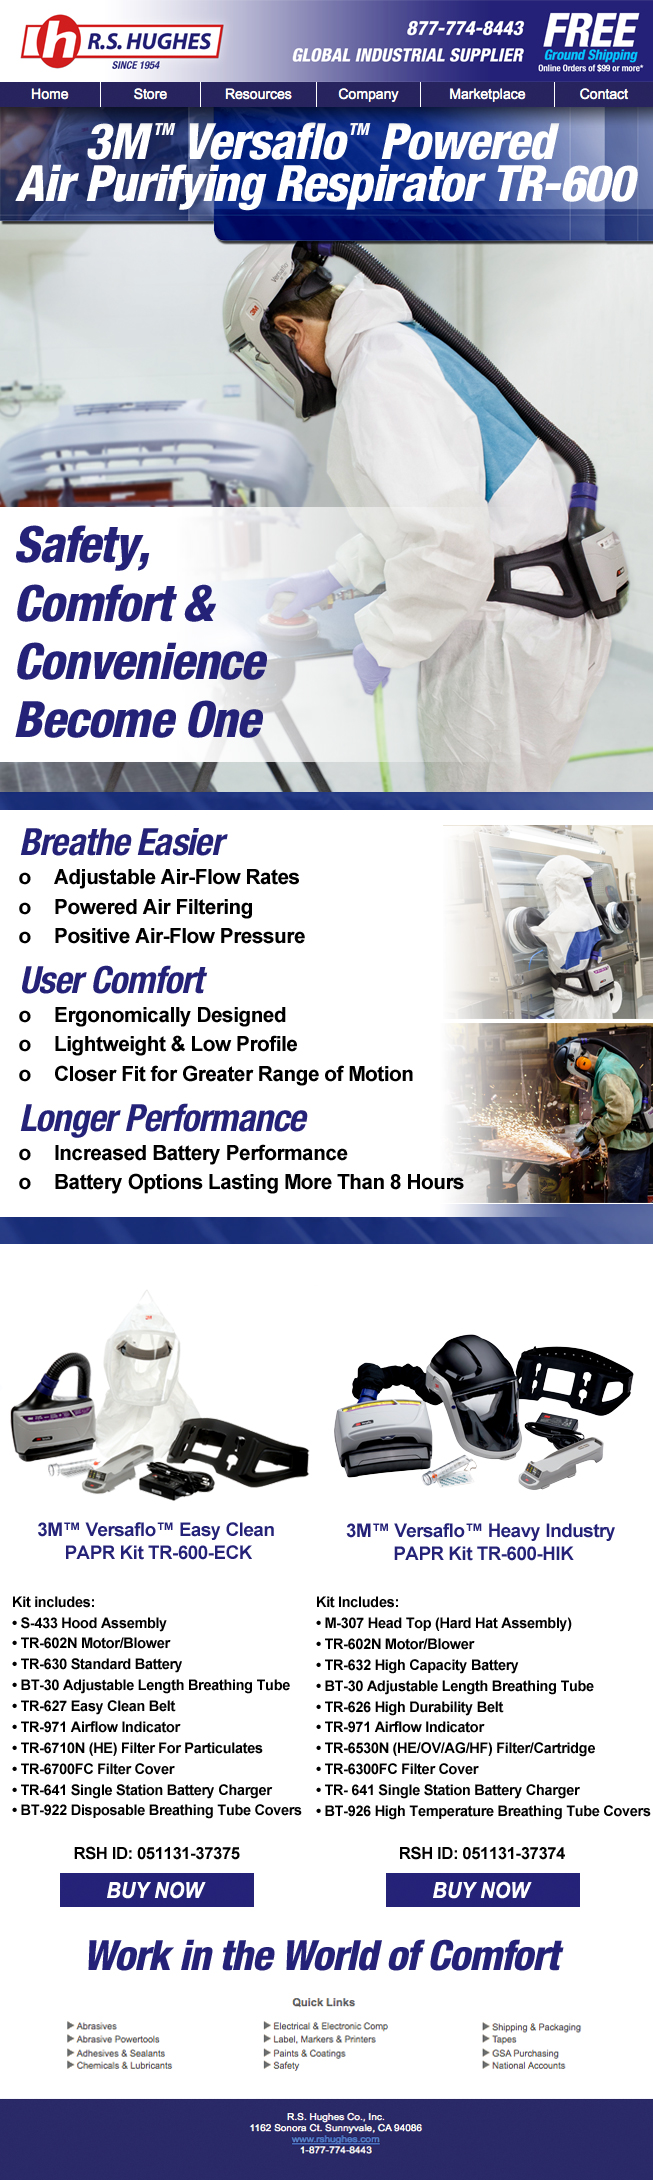 Work In The World Of Comfort Breathe Easy With The 3m Versaflo Powered Air Purifying Respirator System These Respirators Of Air Purifier Purifier Breathe Easy